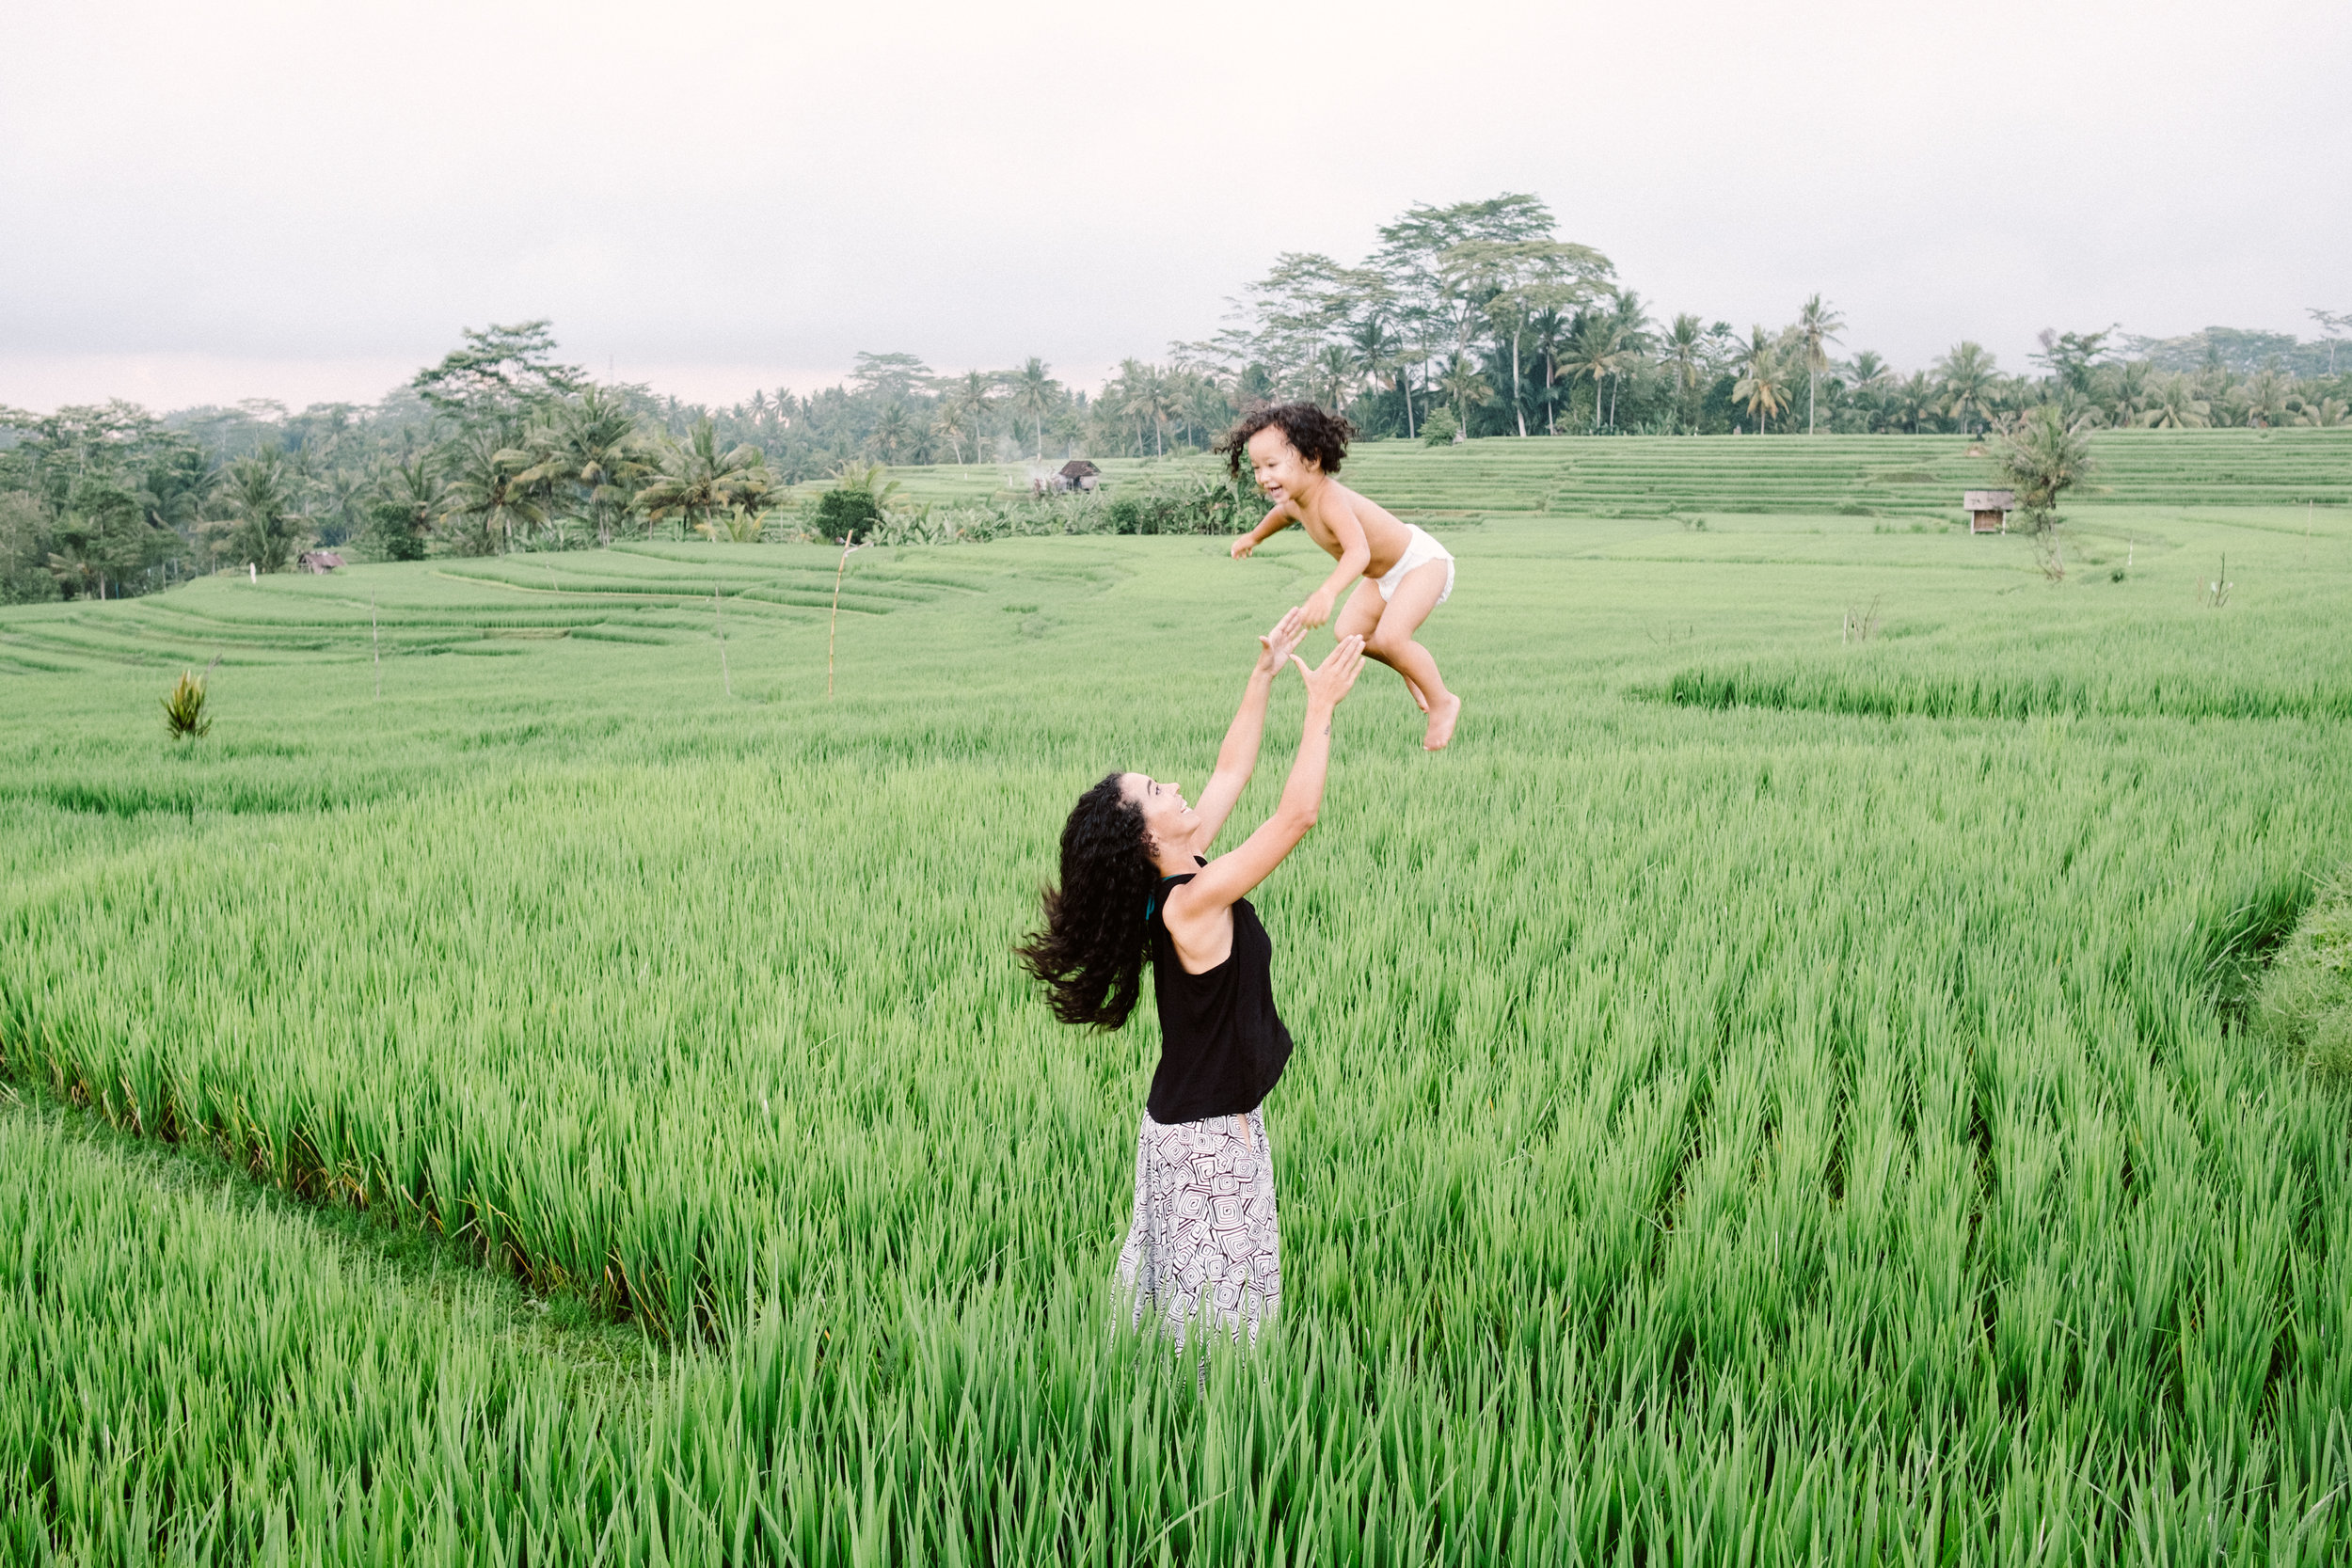 That's me. Throwing my toddler into the air. In a rice patty field. Which has nothing to do this with anything.